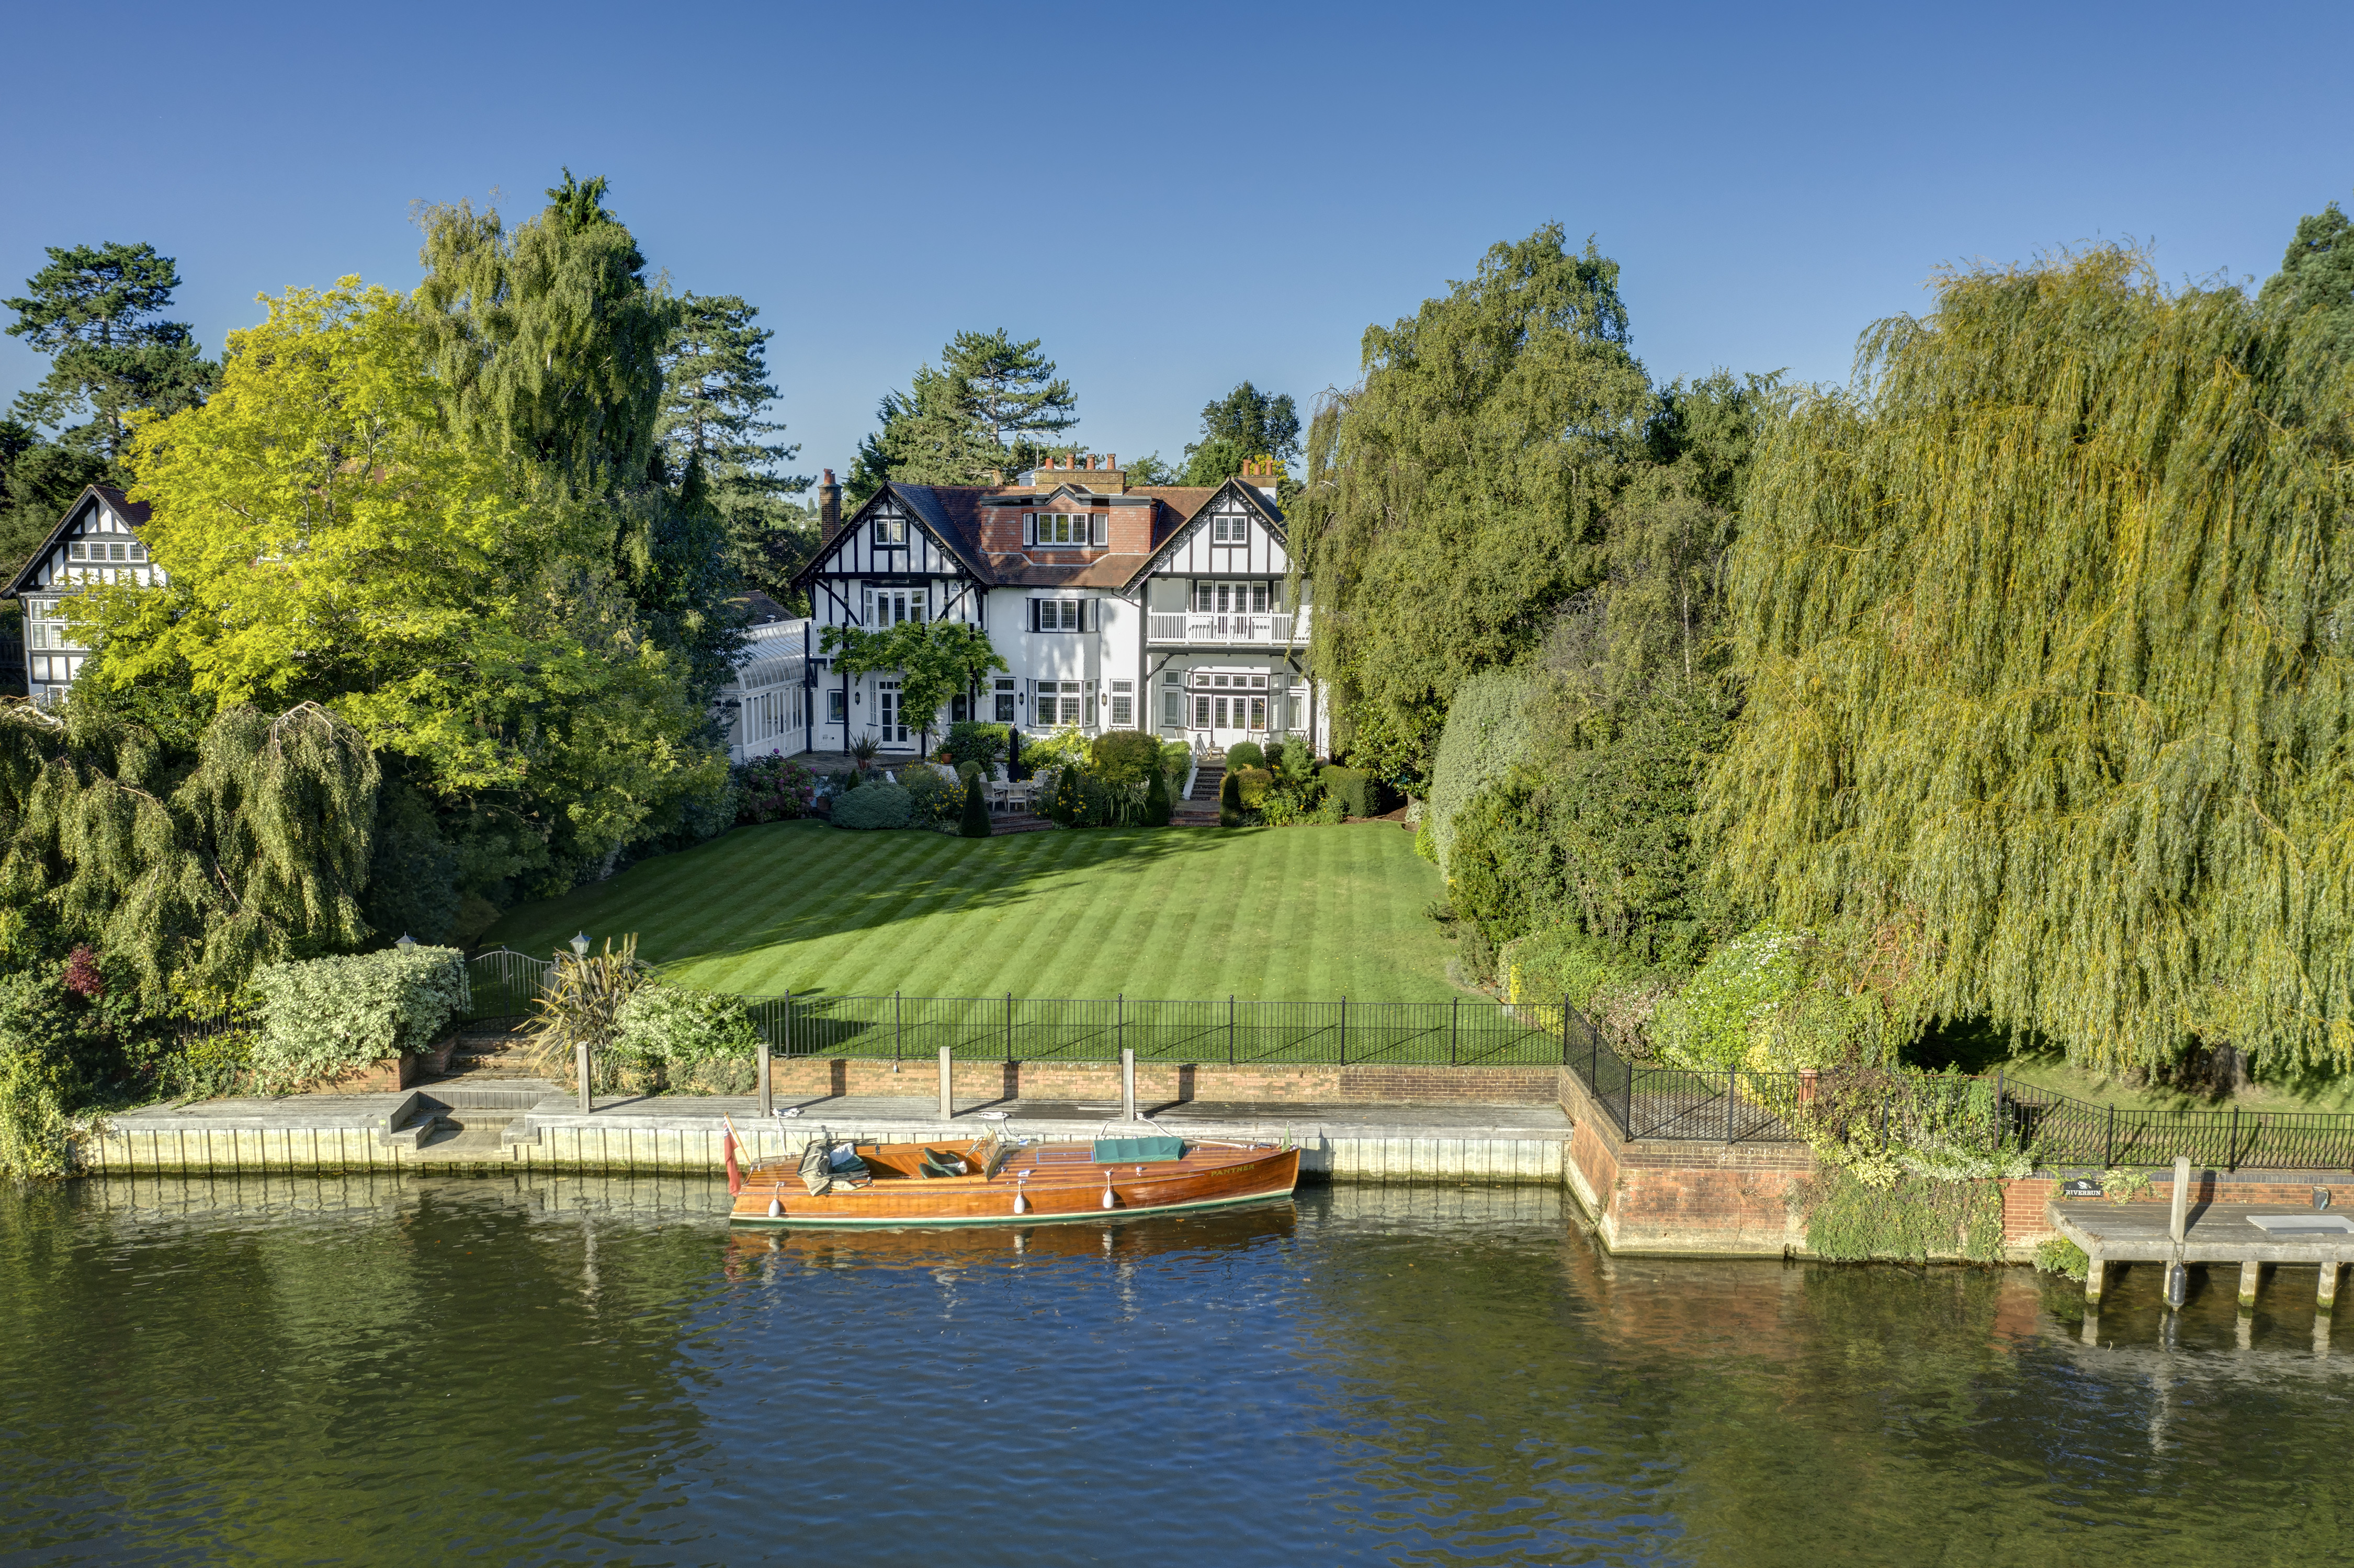 A simply perfect house on the Thames with gardens that run down to the water's edge - Country Life